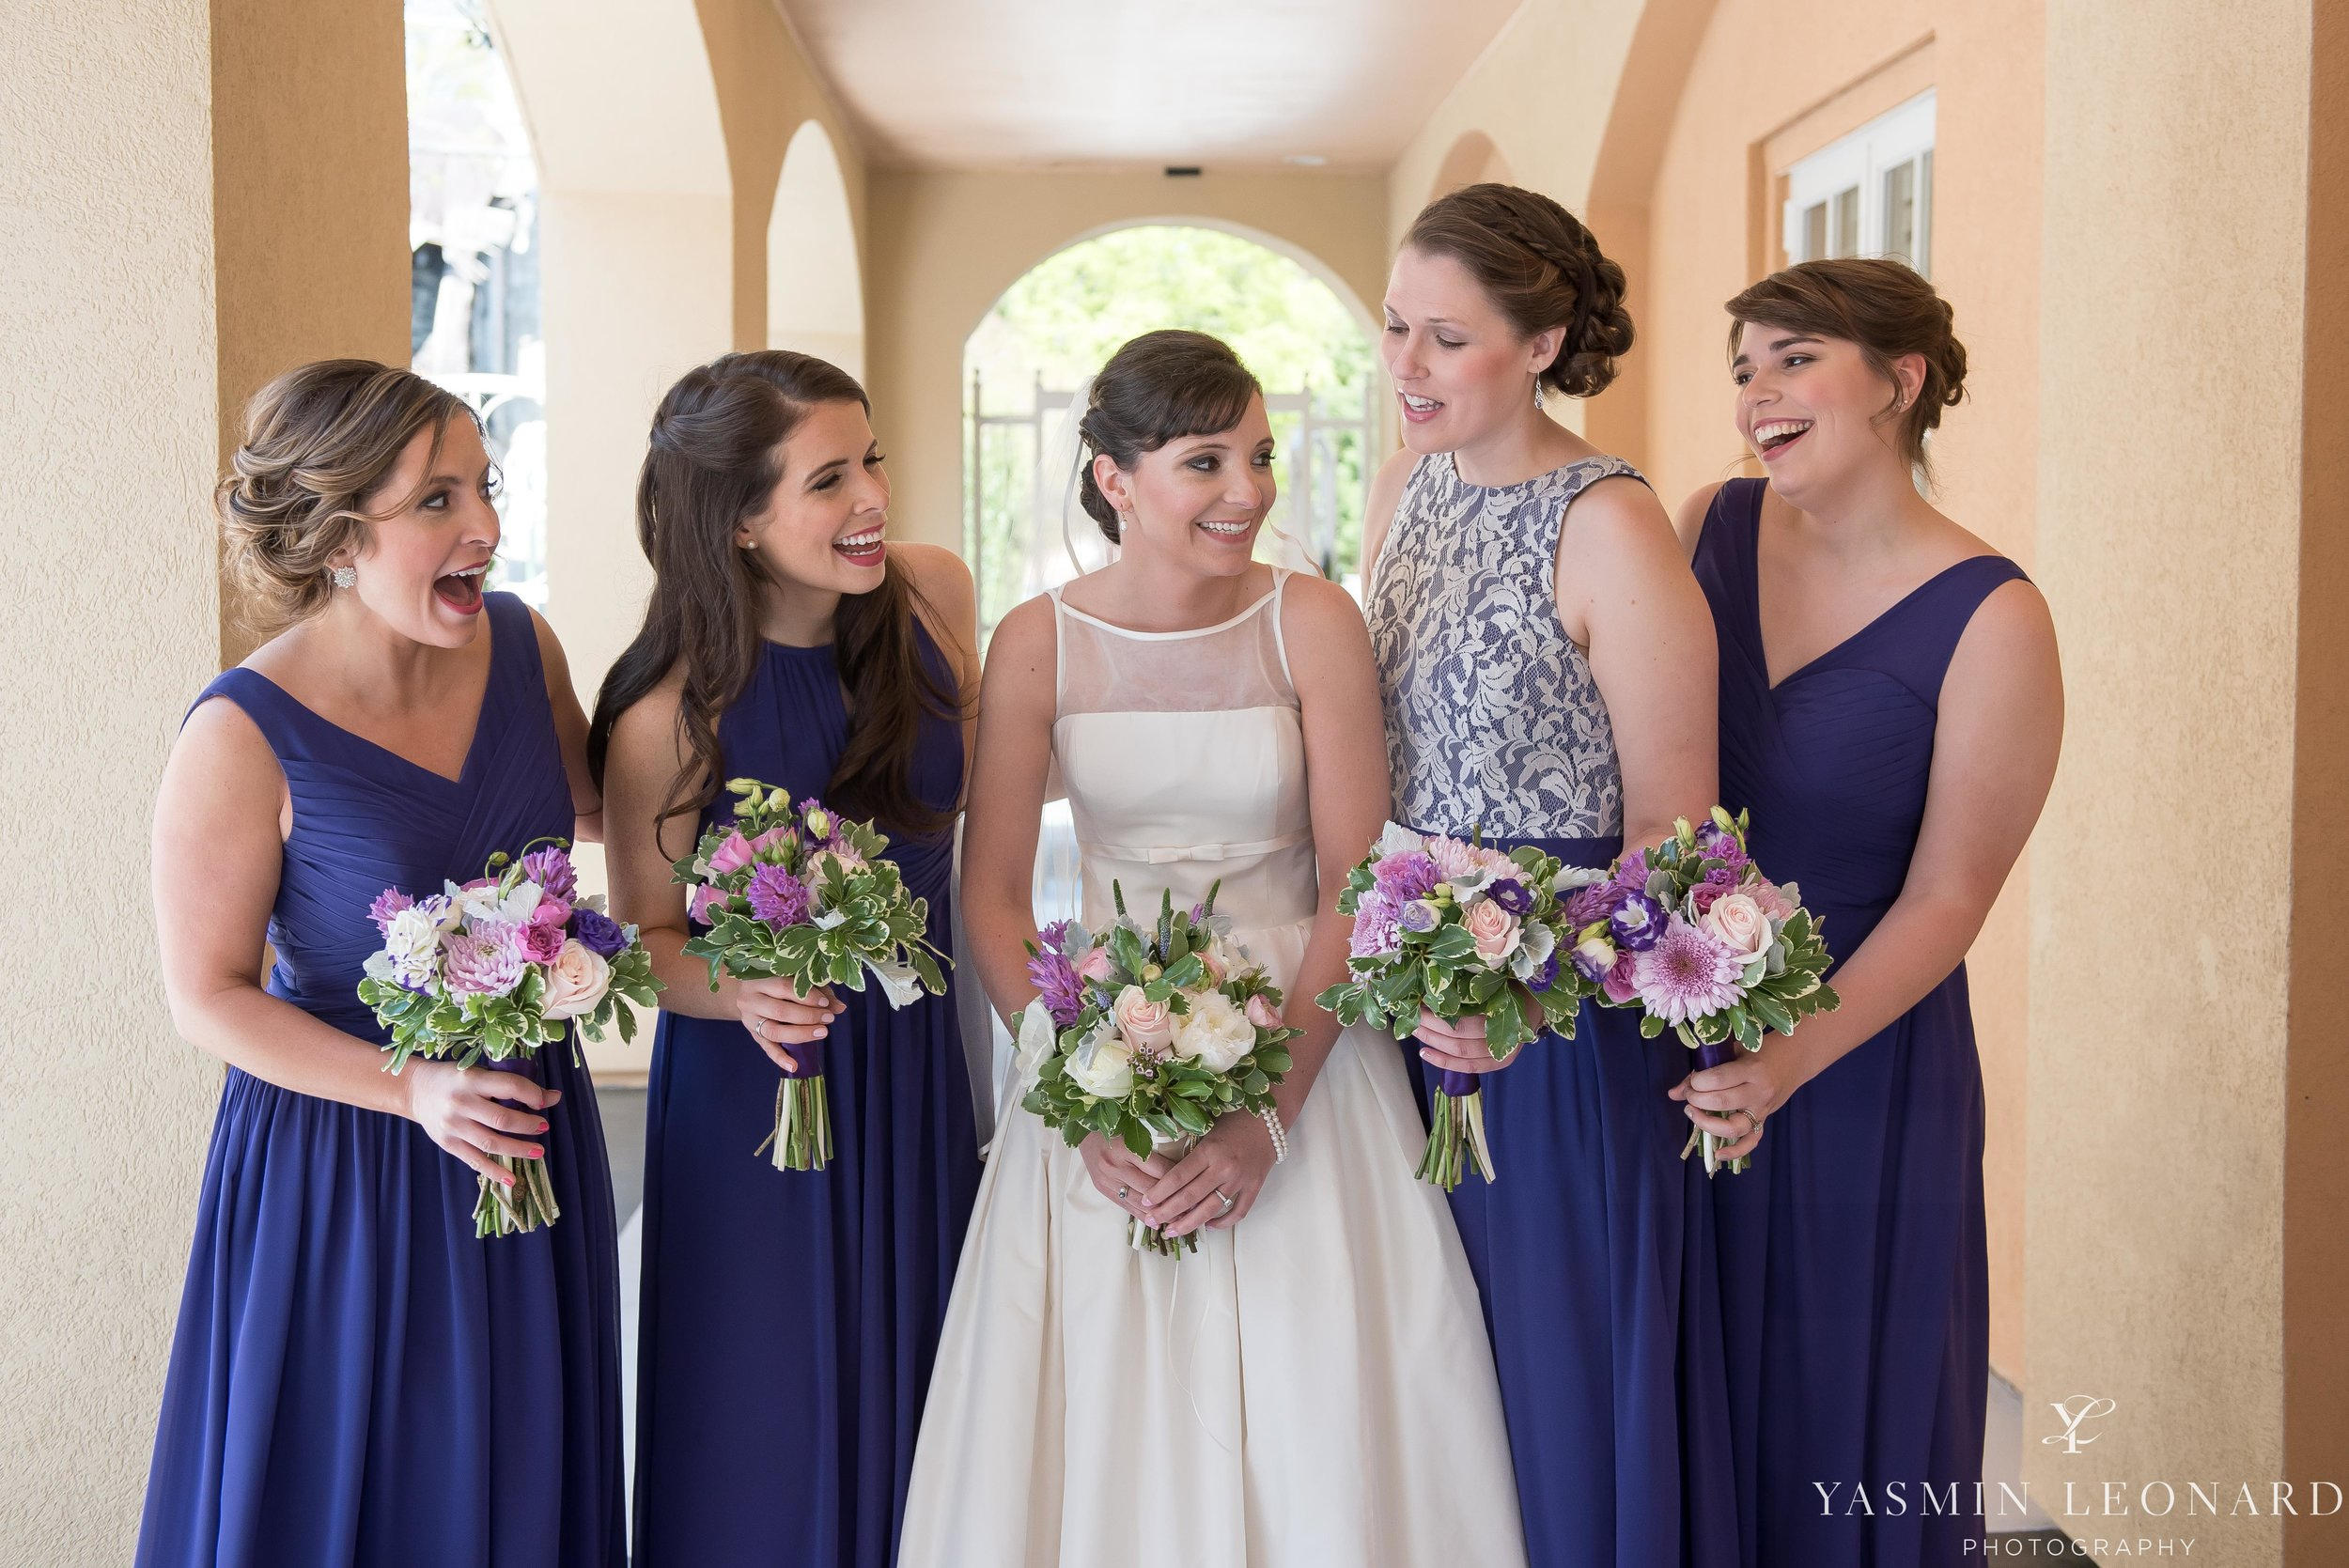 JH ADAMS INN - HIGH POINT UNIVERSITY CHAPEL WEDDING - HPU CHAPEL - HIGH POINT WEDDINGS - NC WEDDING PHOTOGRAPHER - YASMIN LEONARD PHOTOGRAPHY - HIGH POINT NC - HIGH POINT WEDDINGS -15.jpg